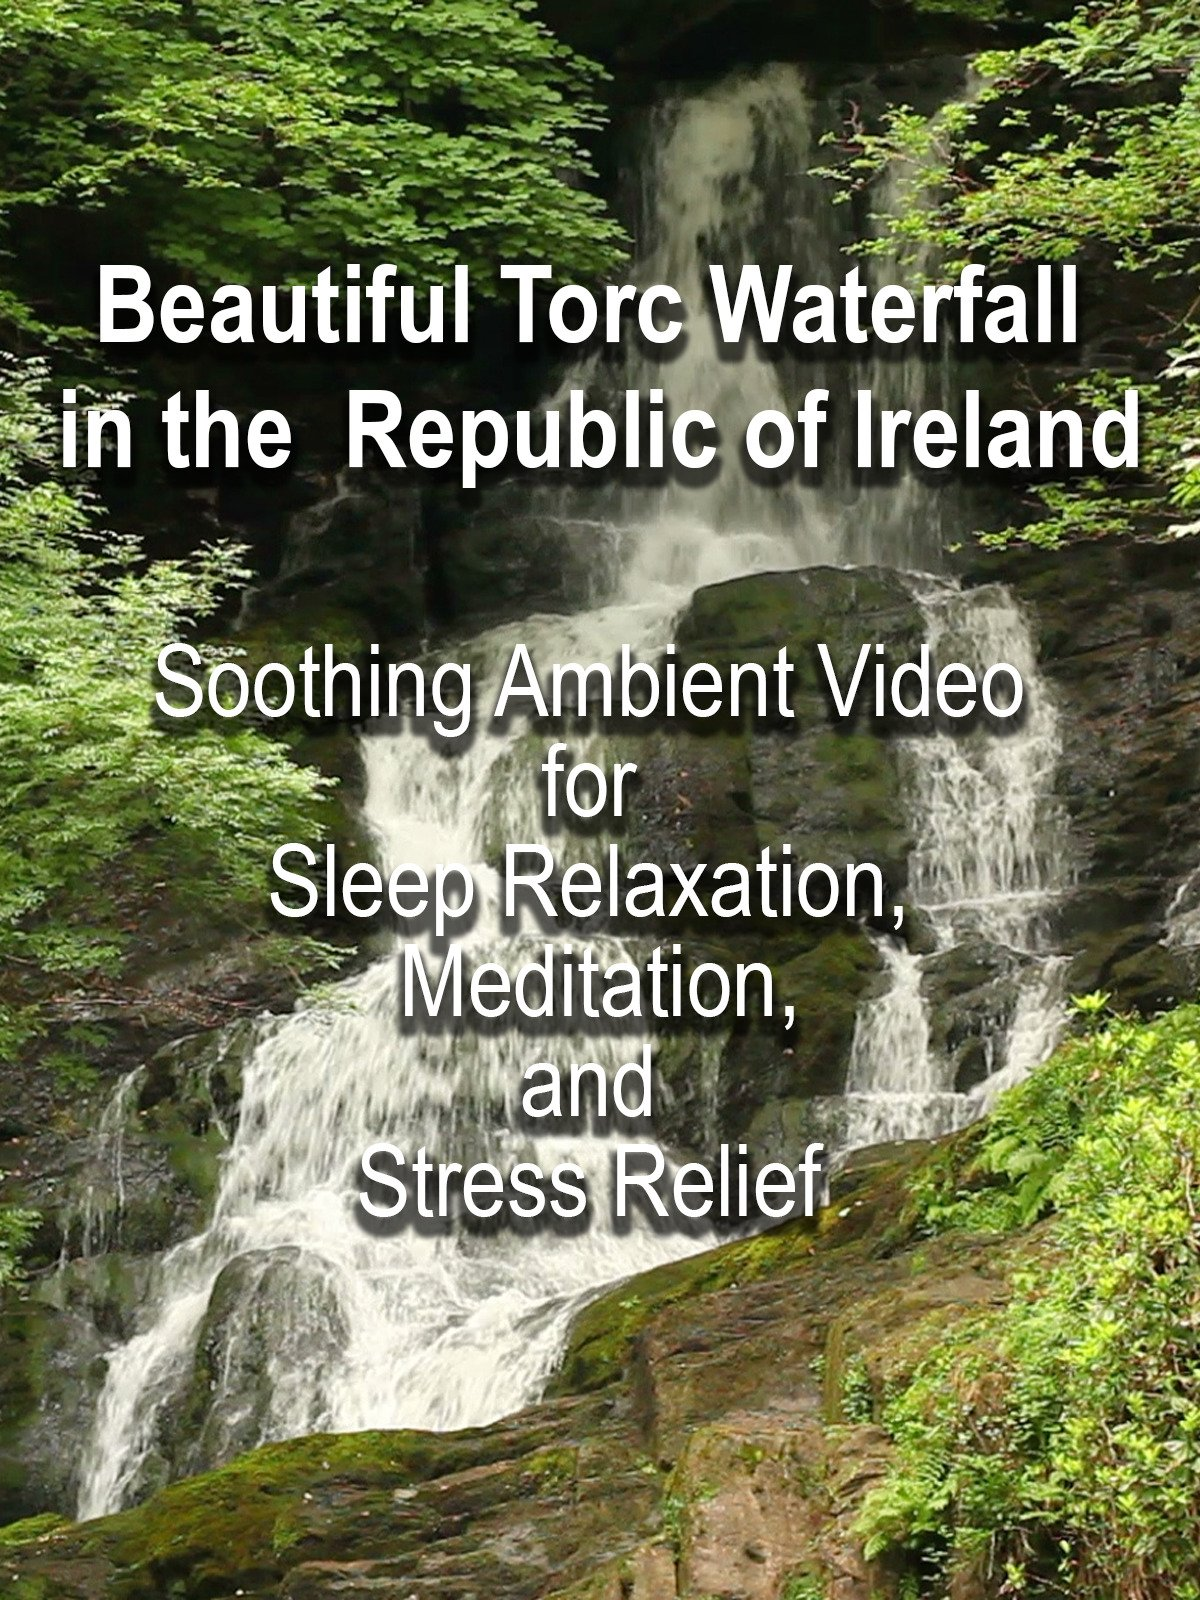 Beautiful Torc Waterfall in the Republic of Ireland Soothing Ambient Video for Sleep Relaxation, Meditation, and Stress Relief